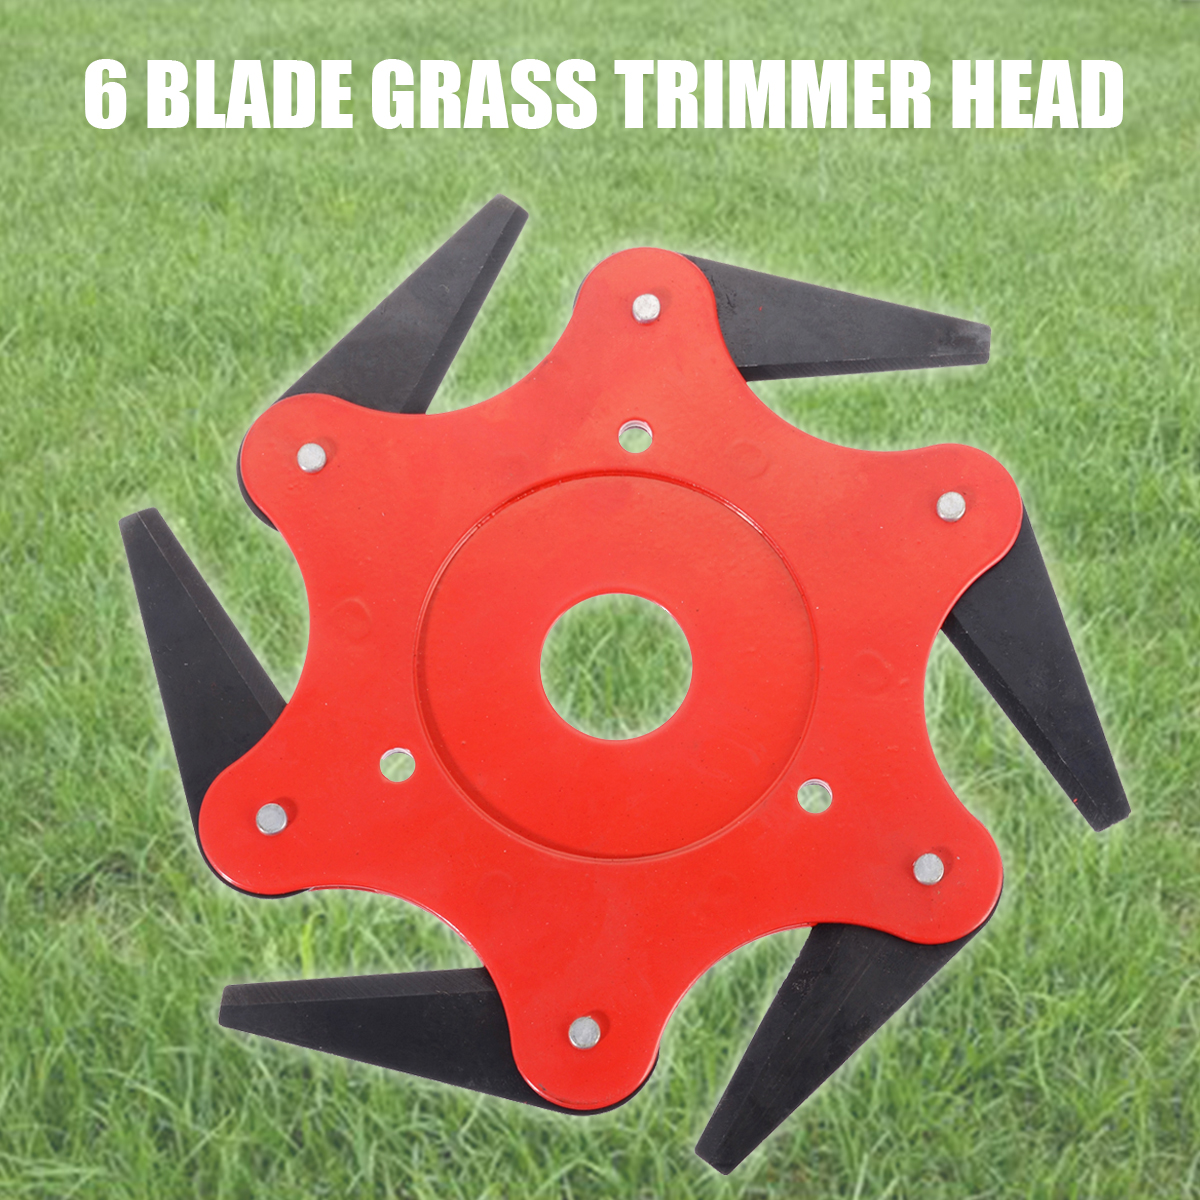 65Mn 6 Blades Trimmer Head Razors Metal Lawn Mower Weed Eater Grass Trimmer Head Brush Cutter Tool